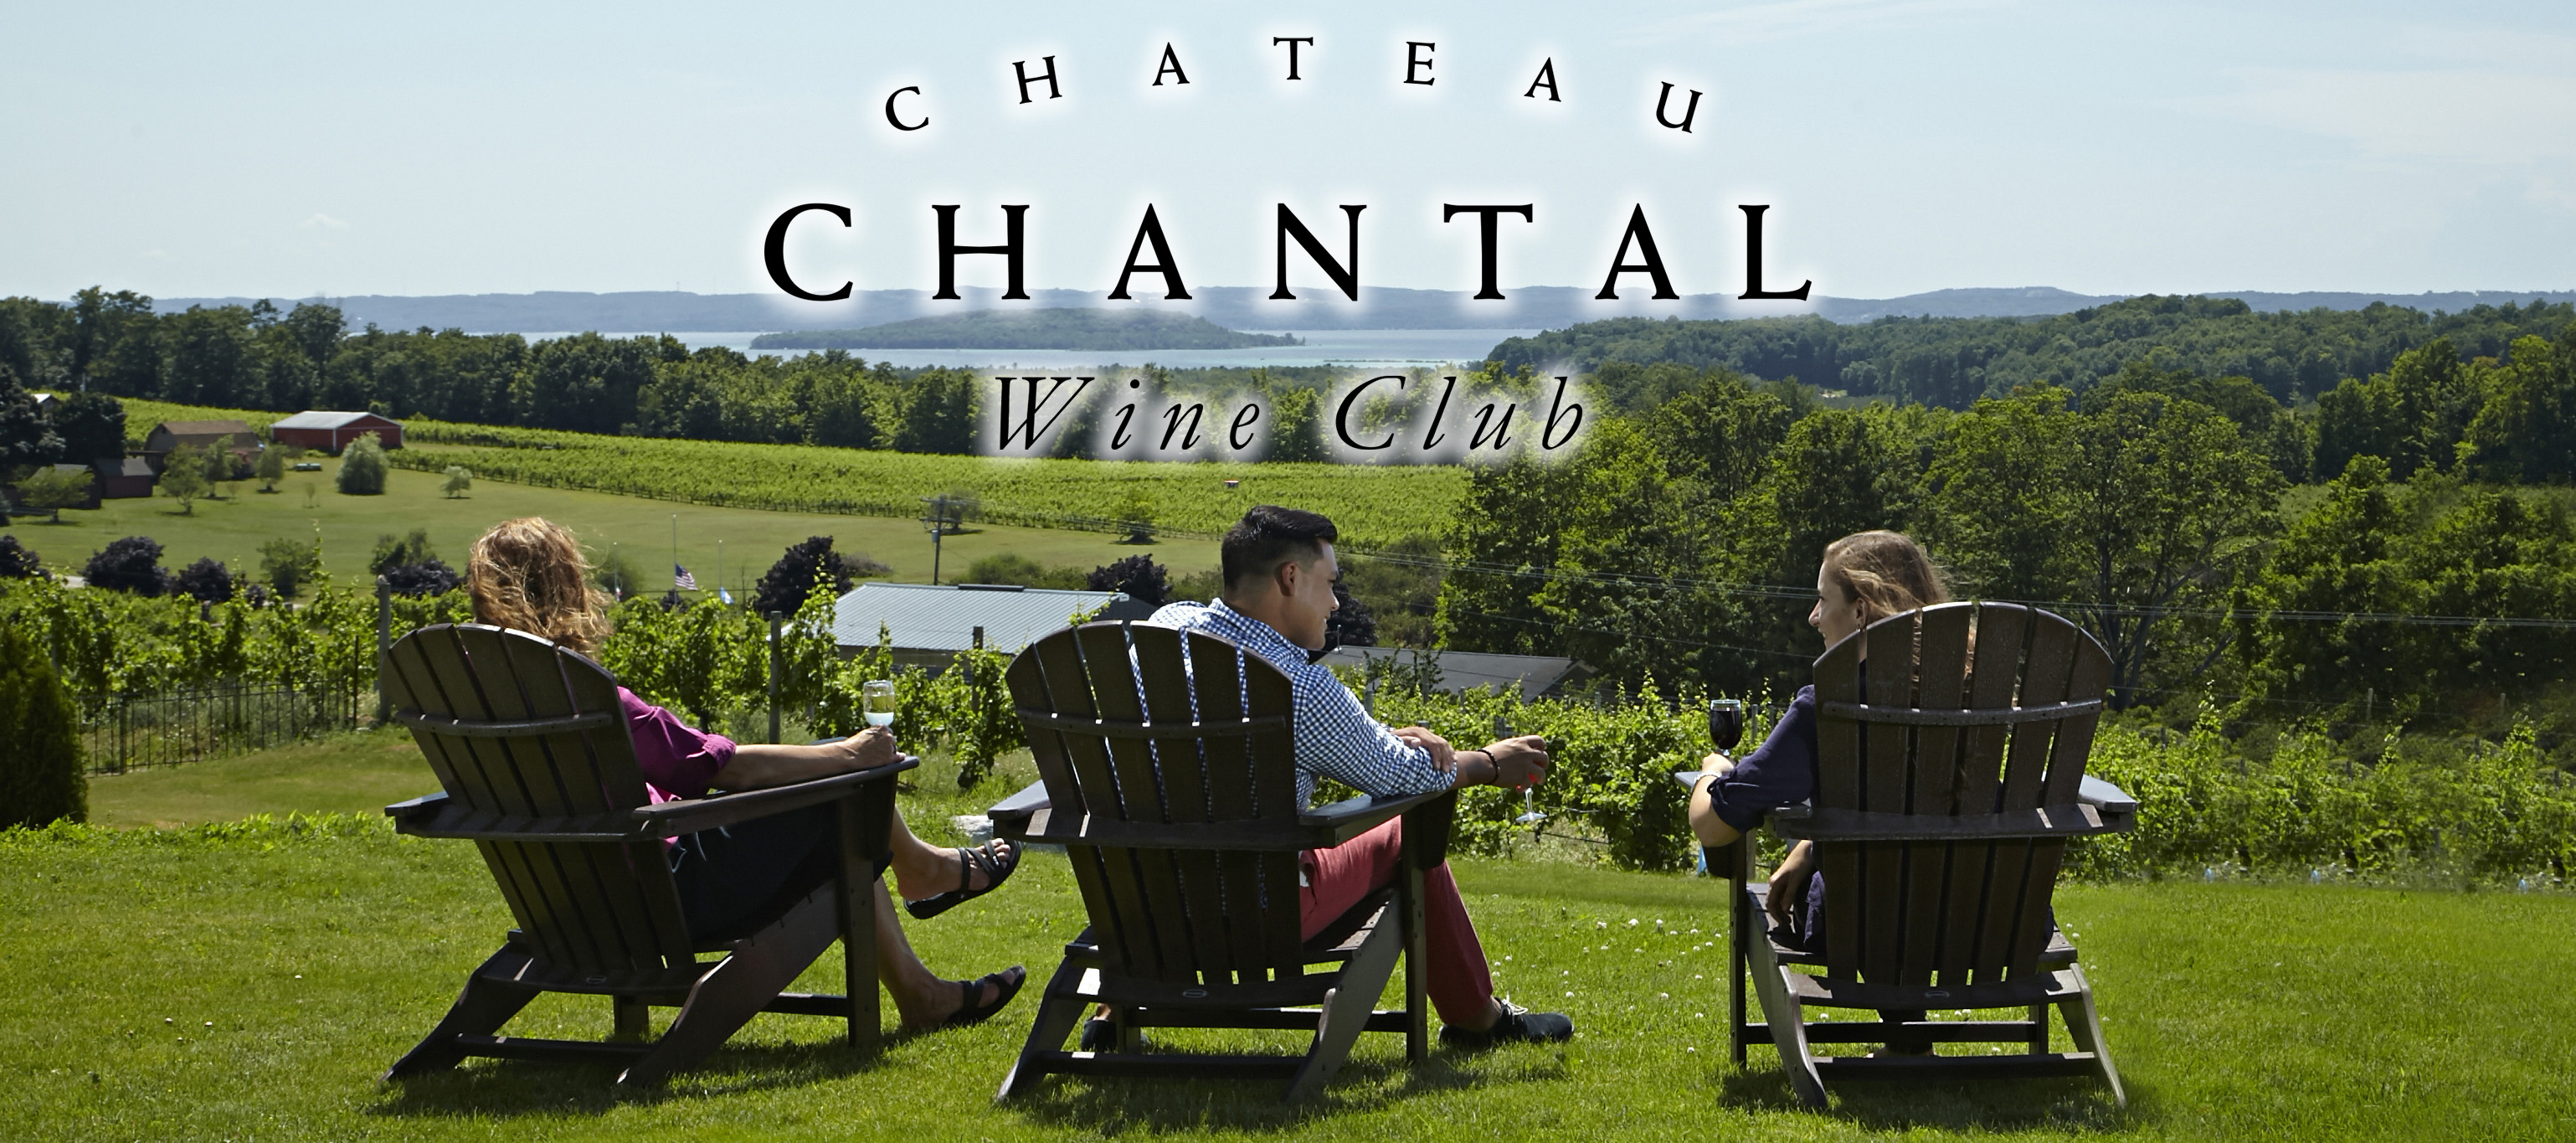 Chateau Chantal Photo Old Mission Peninsual